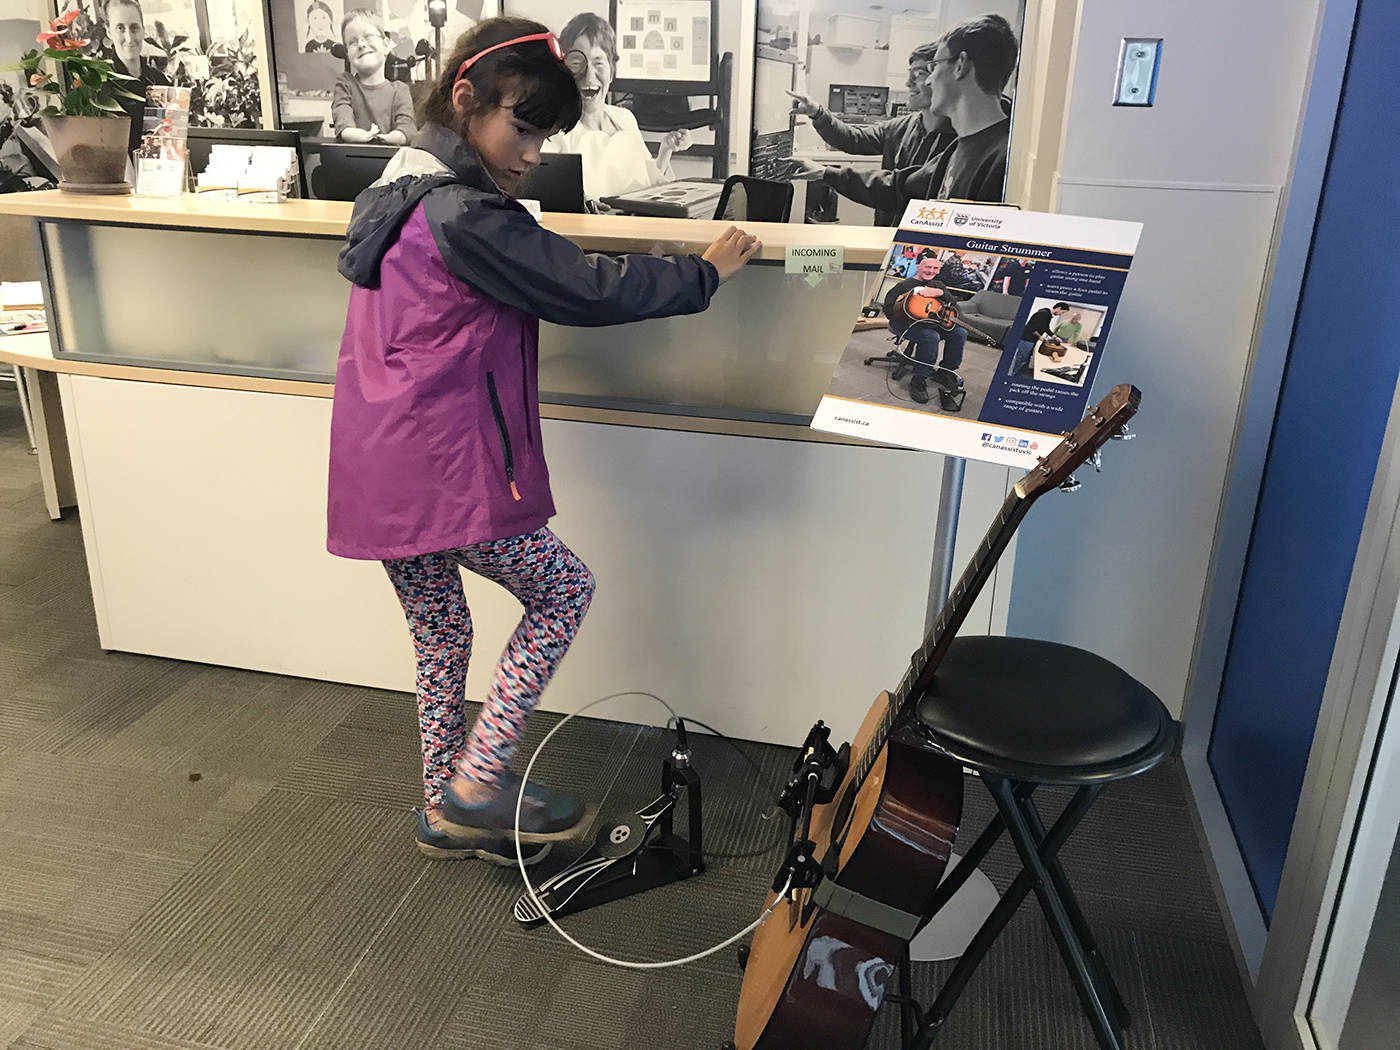 Asha Horter tries out the guitar strummer, played through a foot pedal, at CanAssist at the University of Victoria. (Keri Coles/News staff)